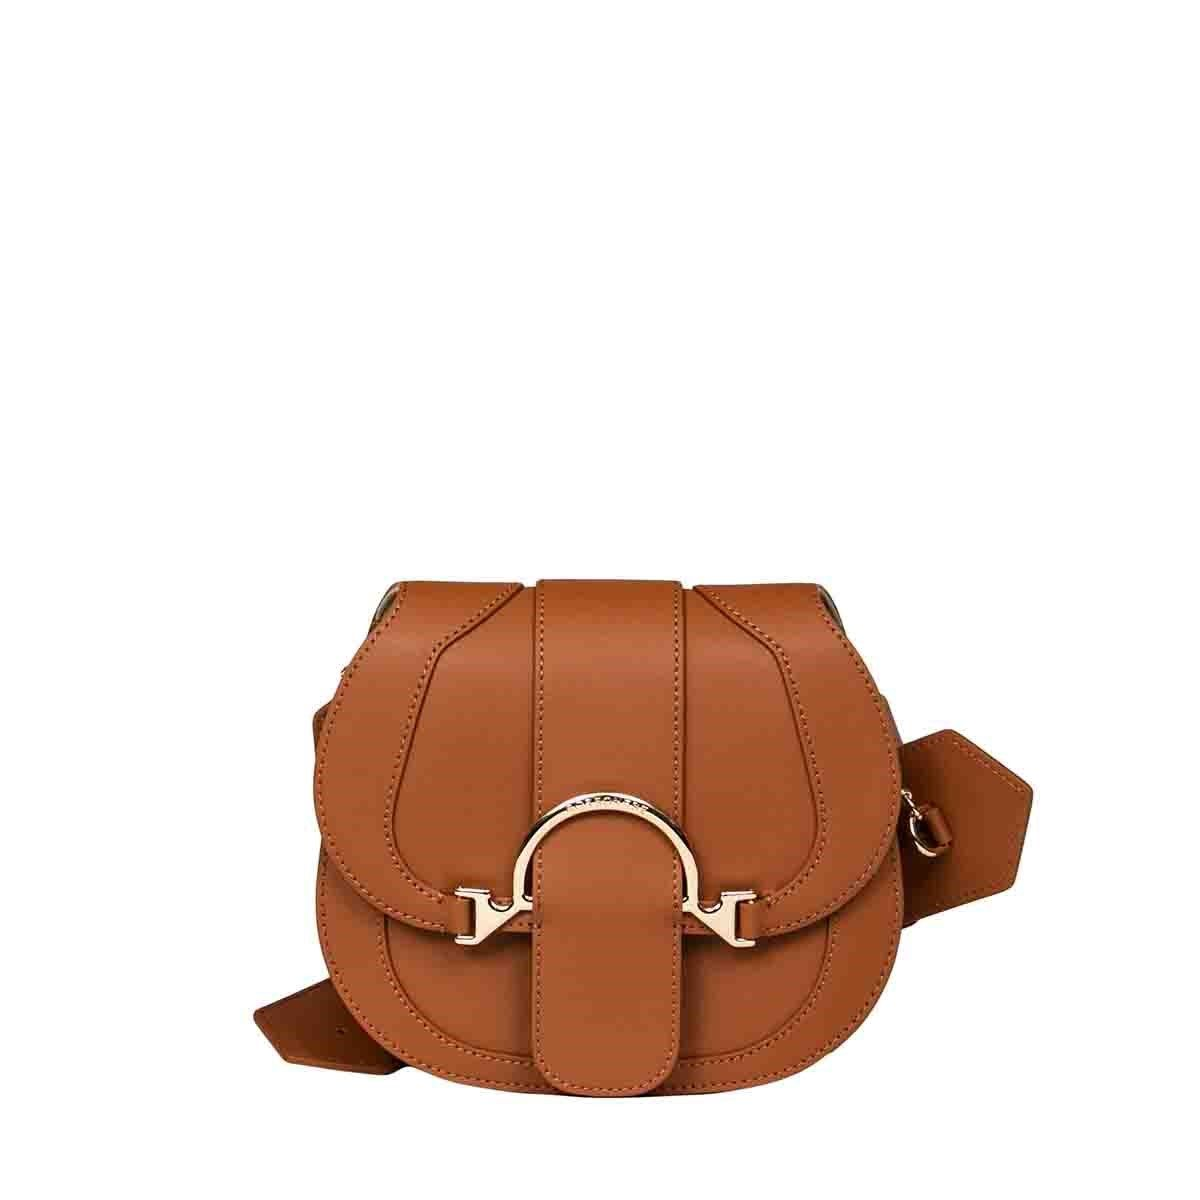 Borbonese BORBONESE WOMEN'S BROWN LEATHER SHOULDER BAG